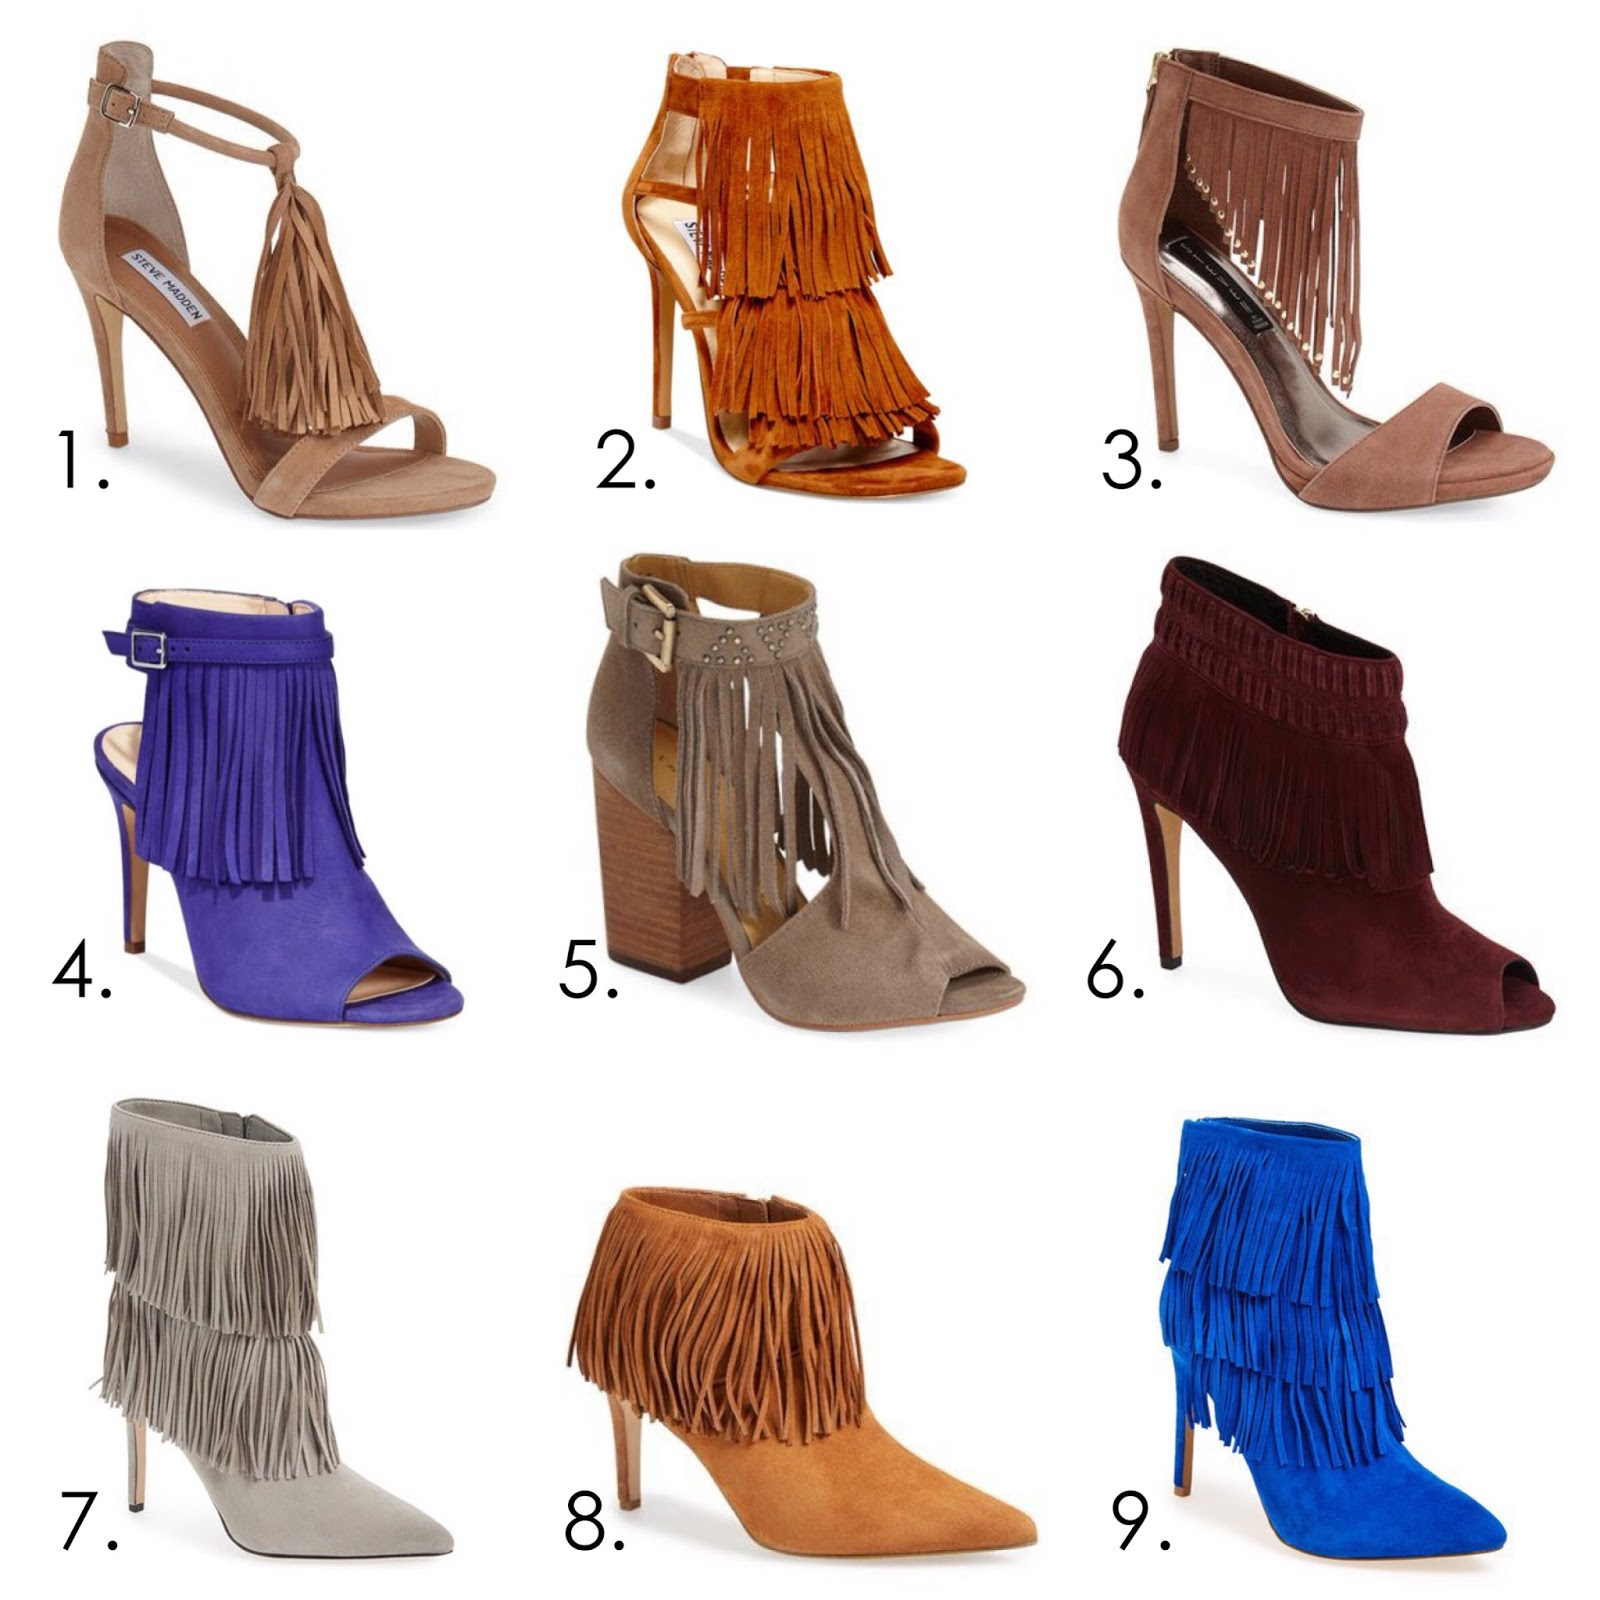 Fringe on heels, fringed booties, fringed shoes, tan fringed shoes, gray fringe booties, fall fringe 2015, fringe trend 2015